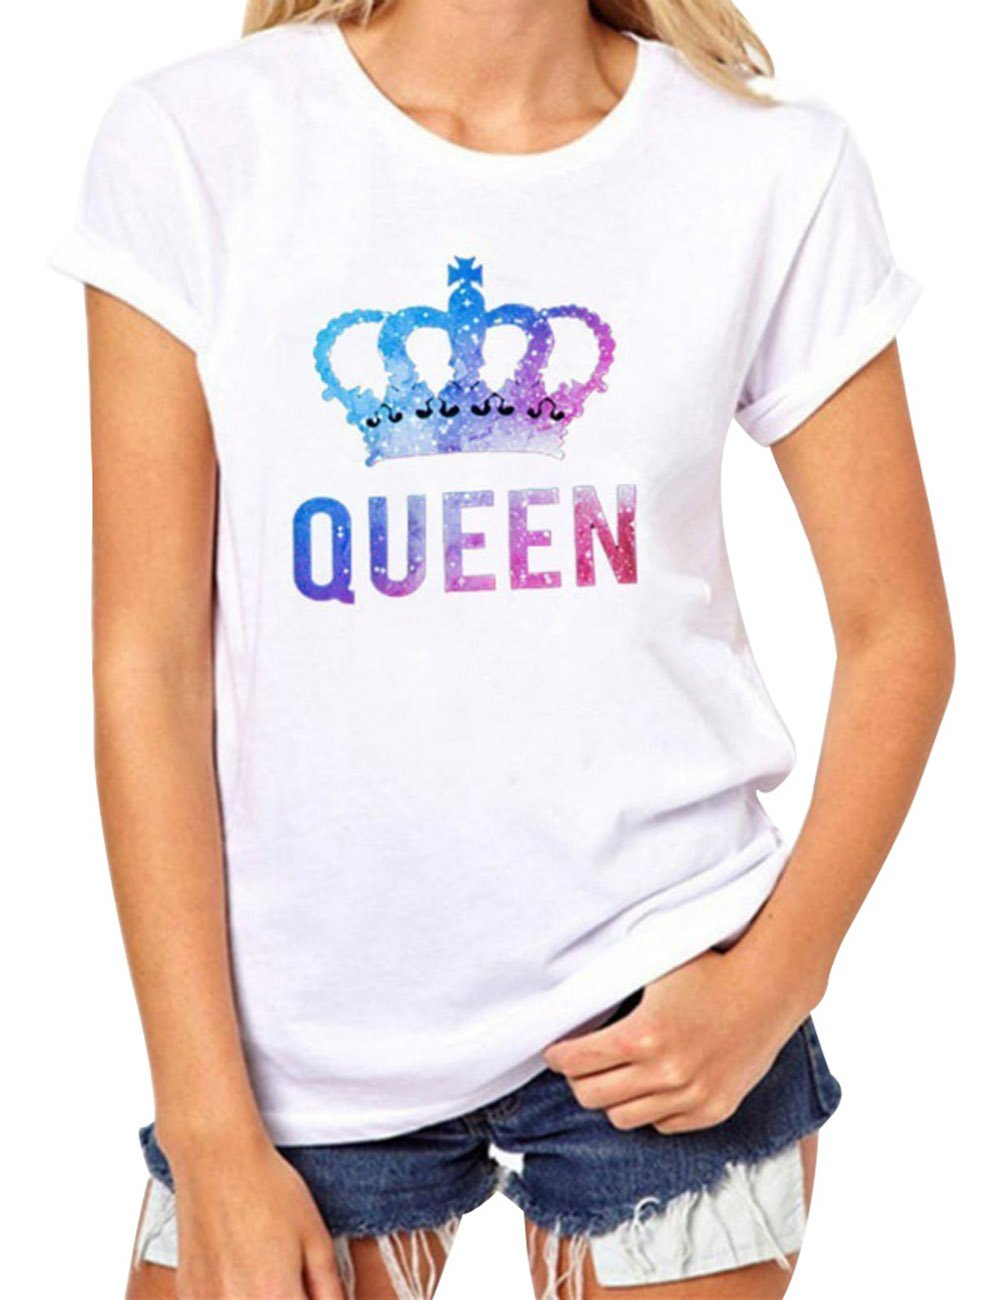 Bangerdei King and Queen Couples T-Shirts Anniversary Newlywed Matching Set Tops Valentines Gifts White 01 Women Queen M + Men King M by Bangerdei (Image #3)